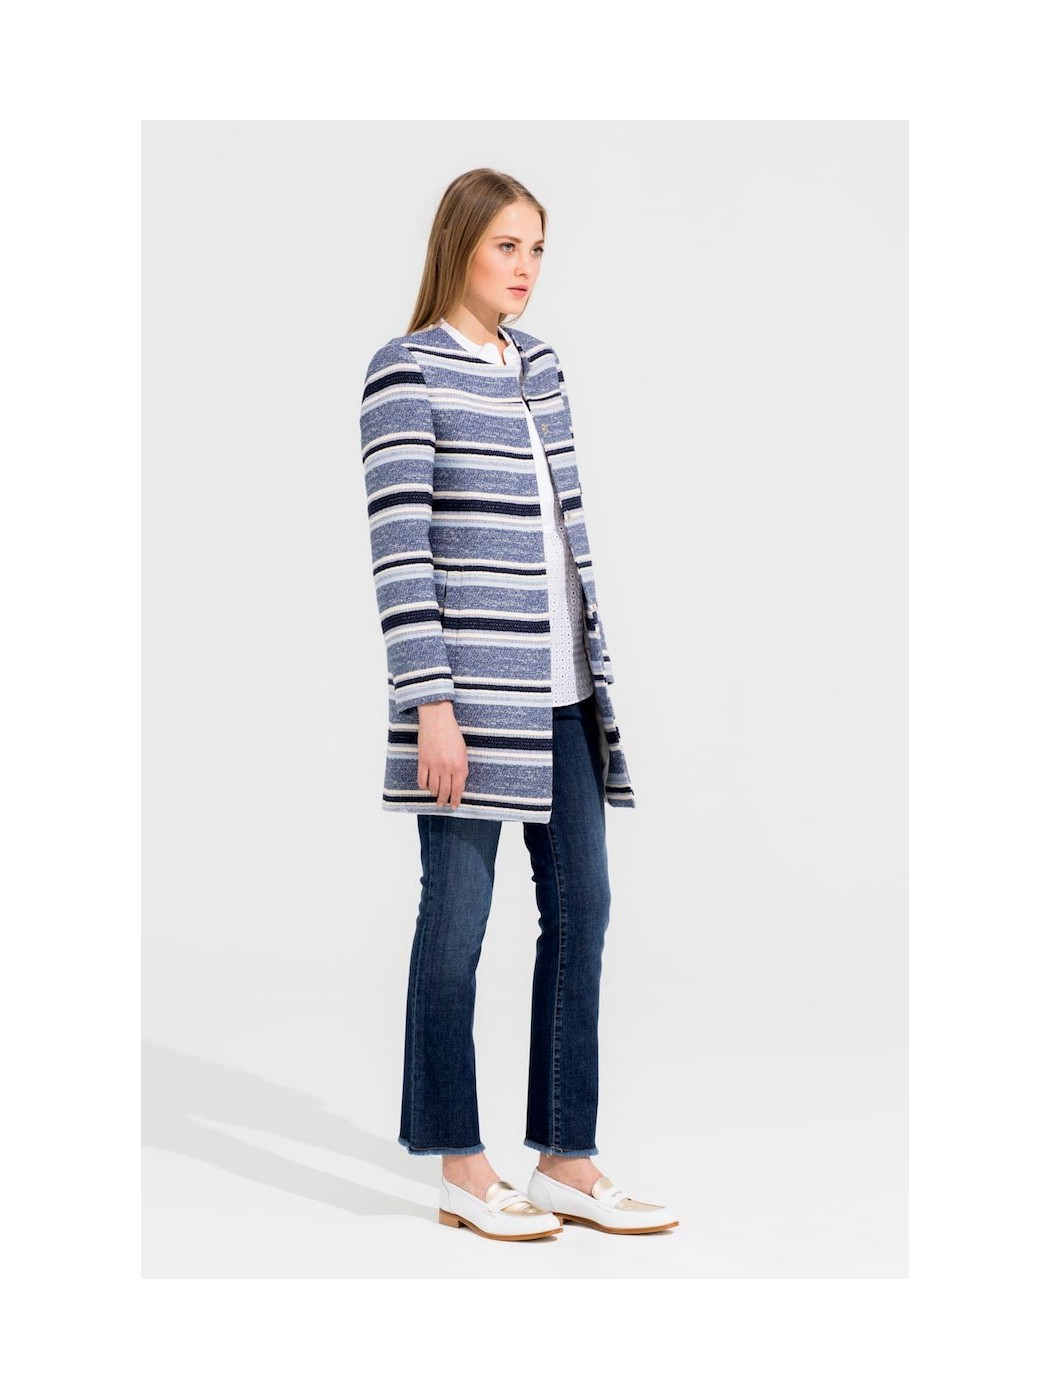 SOFIA NAVY STRIPE JACQUARD +COLOURS